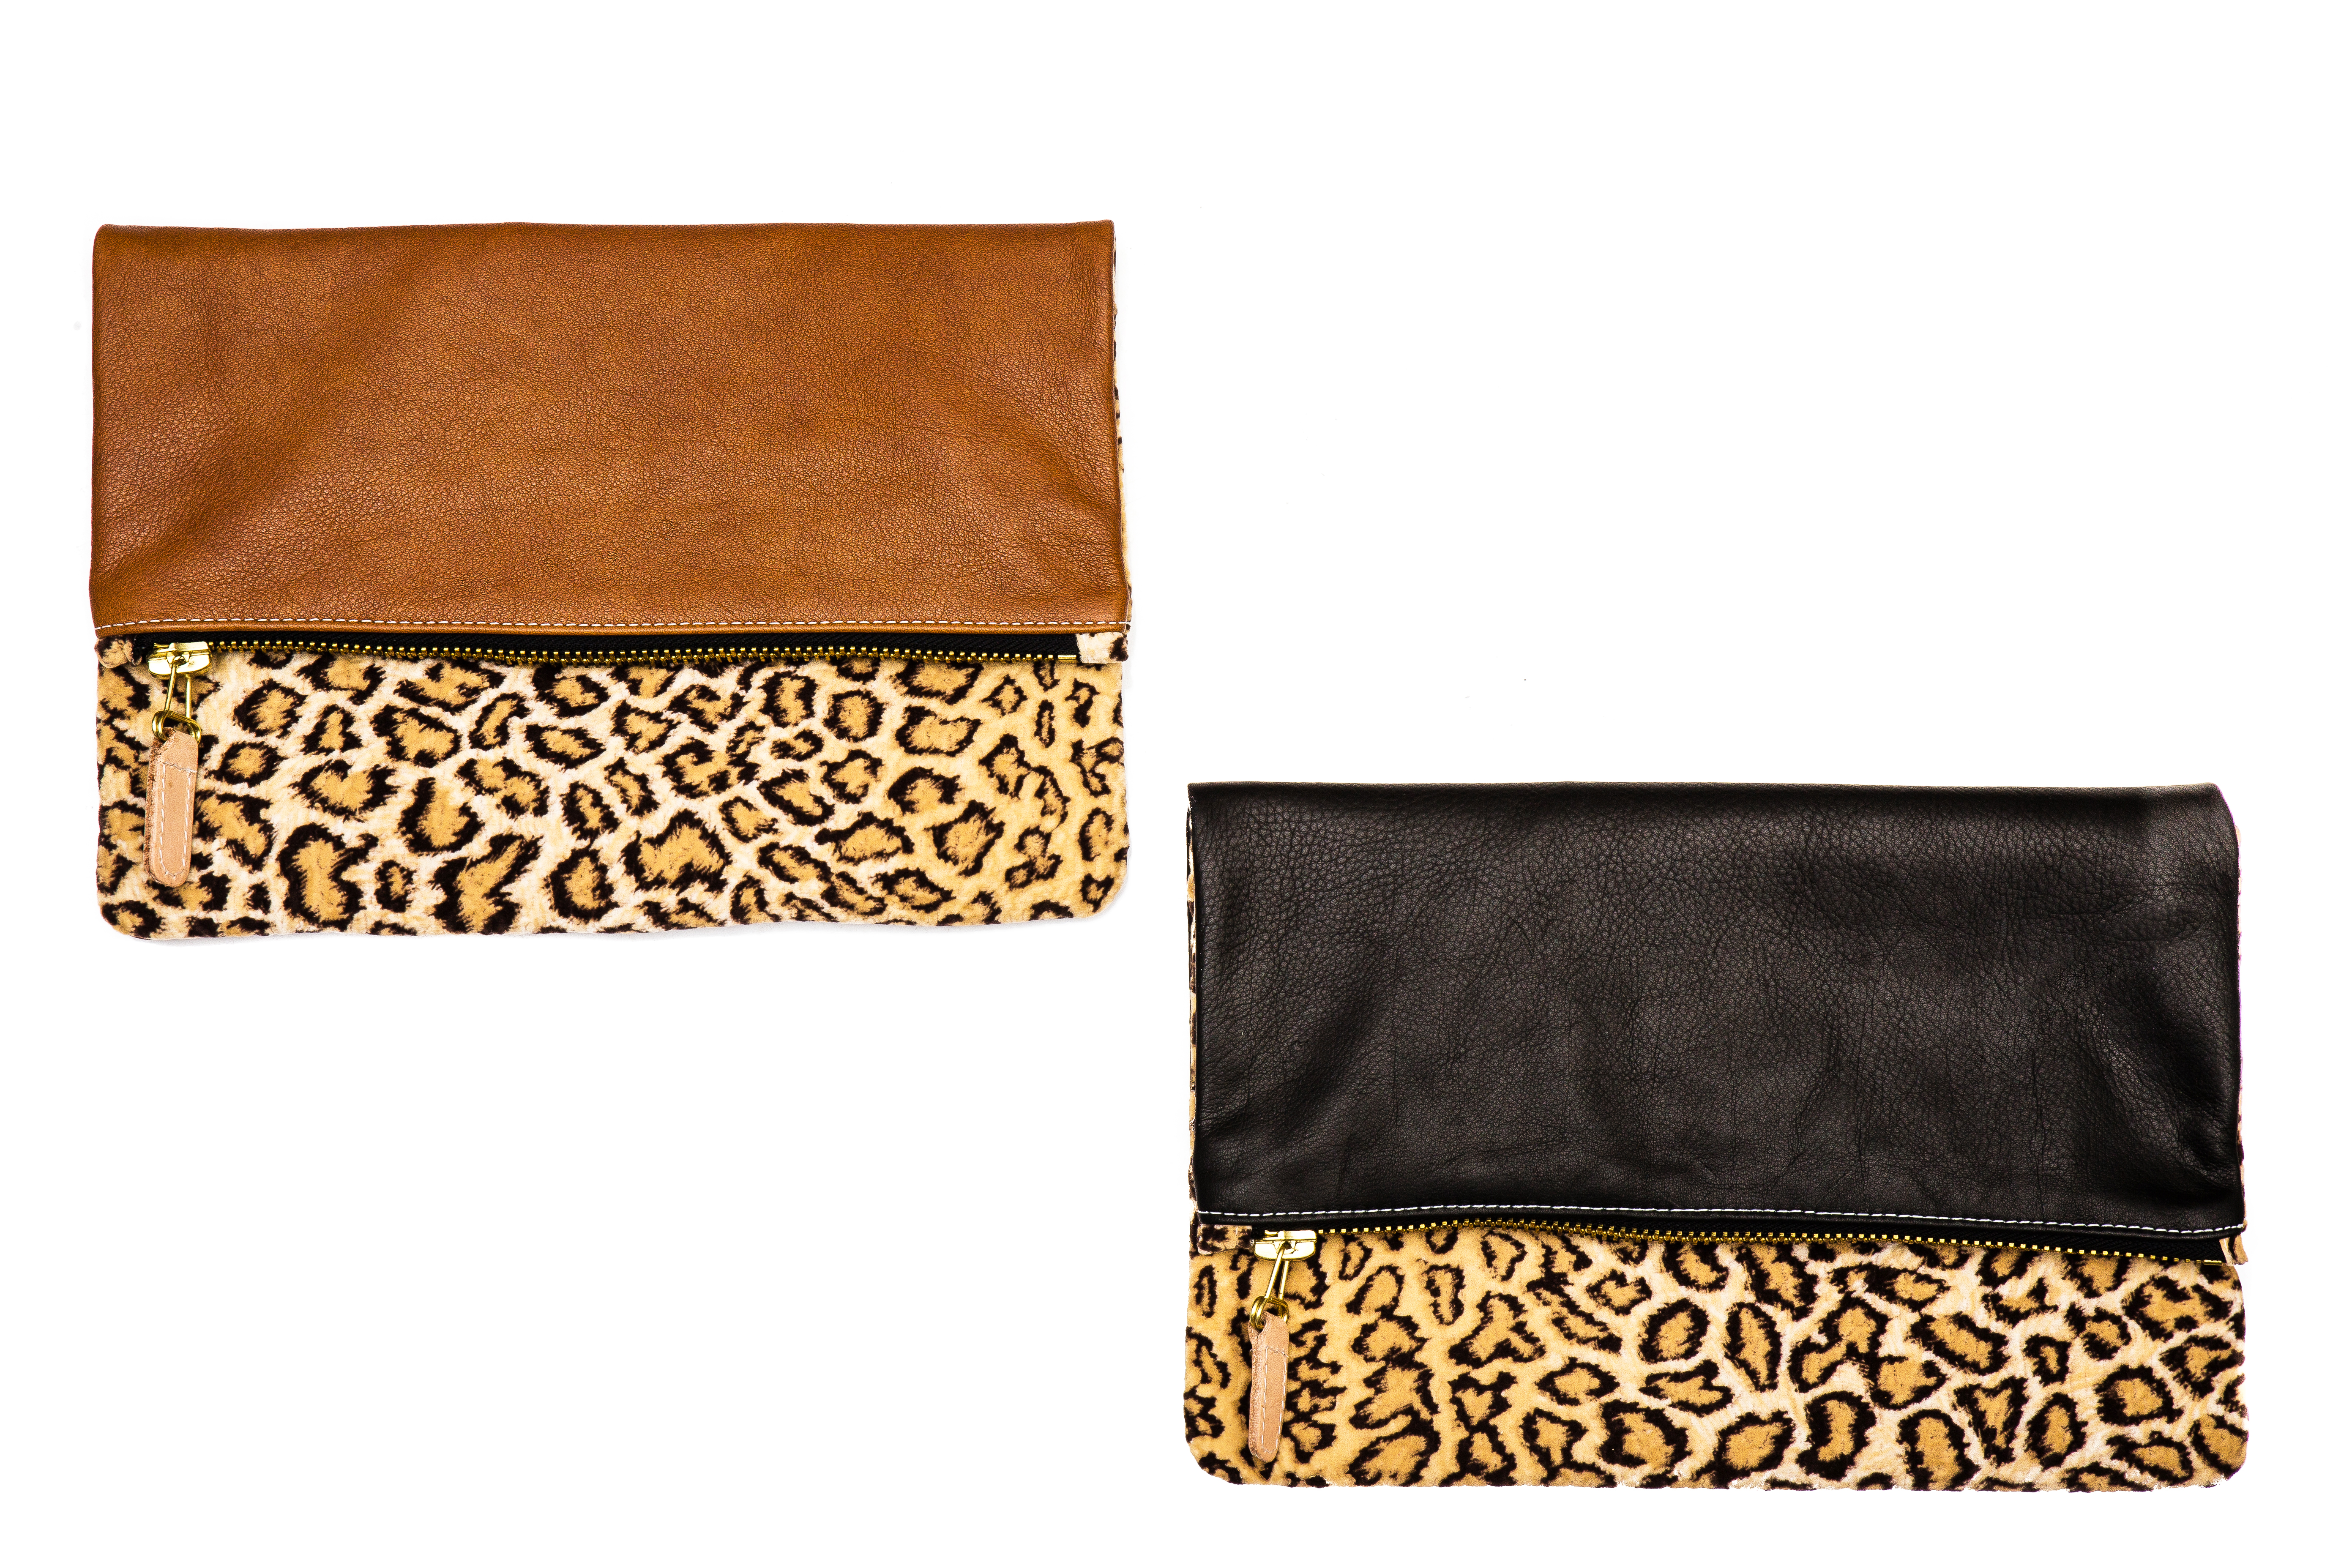 64122eea2653 Fold Over Leather and Chenille Cheetah Print Clutch - Baltimore Bag ...